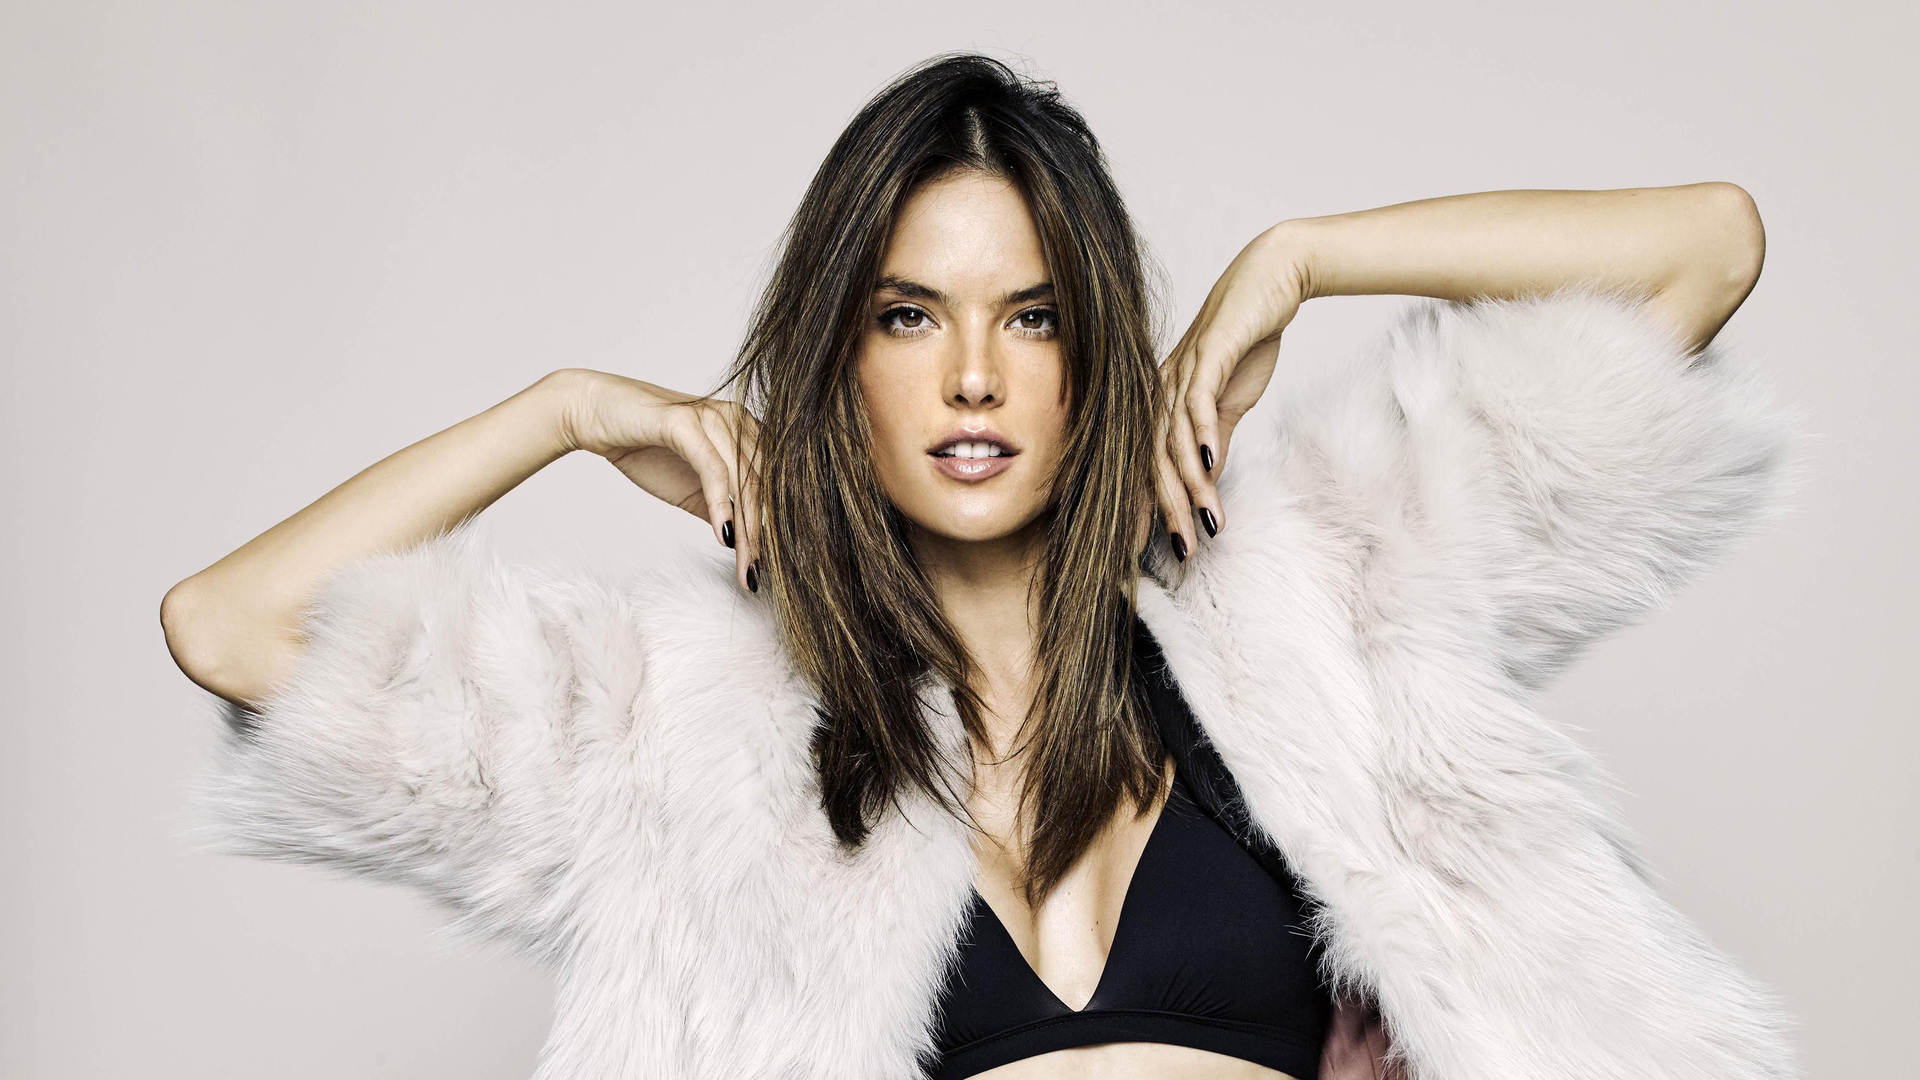 Alessandra Ambrosio Celebrity HD Wallpaper 9 Source 1920x1080 XTI Shoes Fall 2018 Campaign 4k Laptop